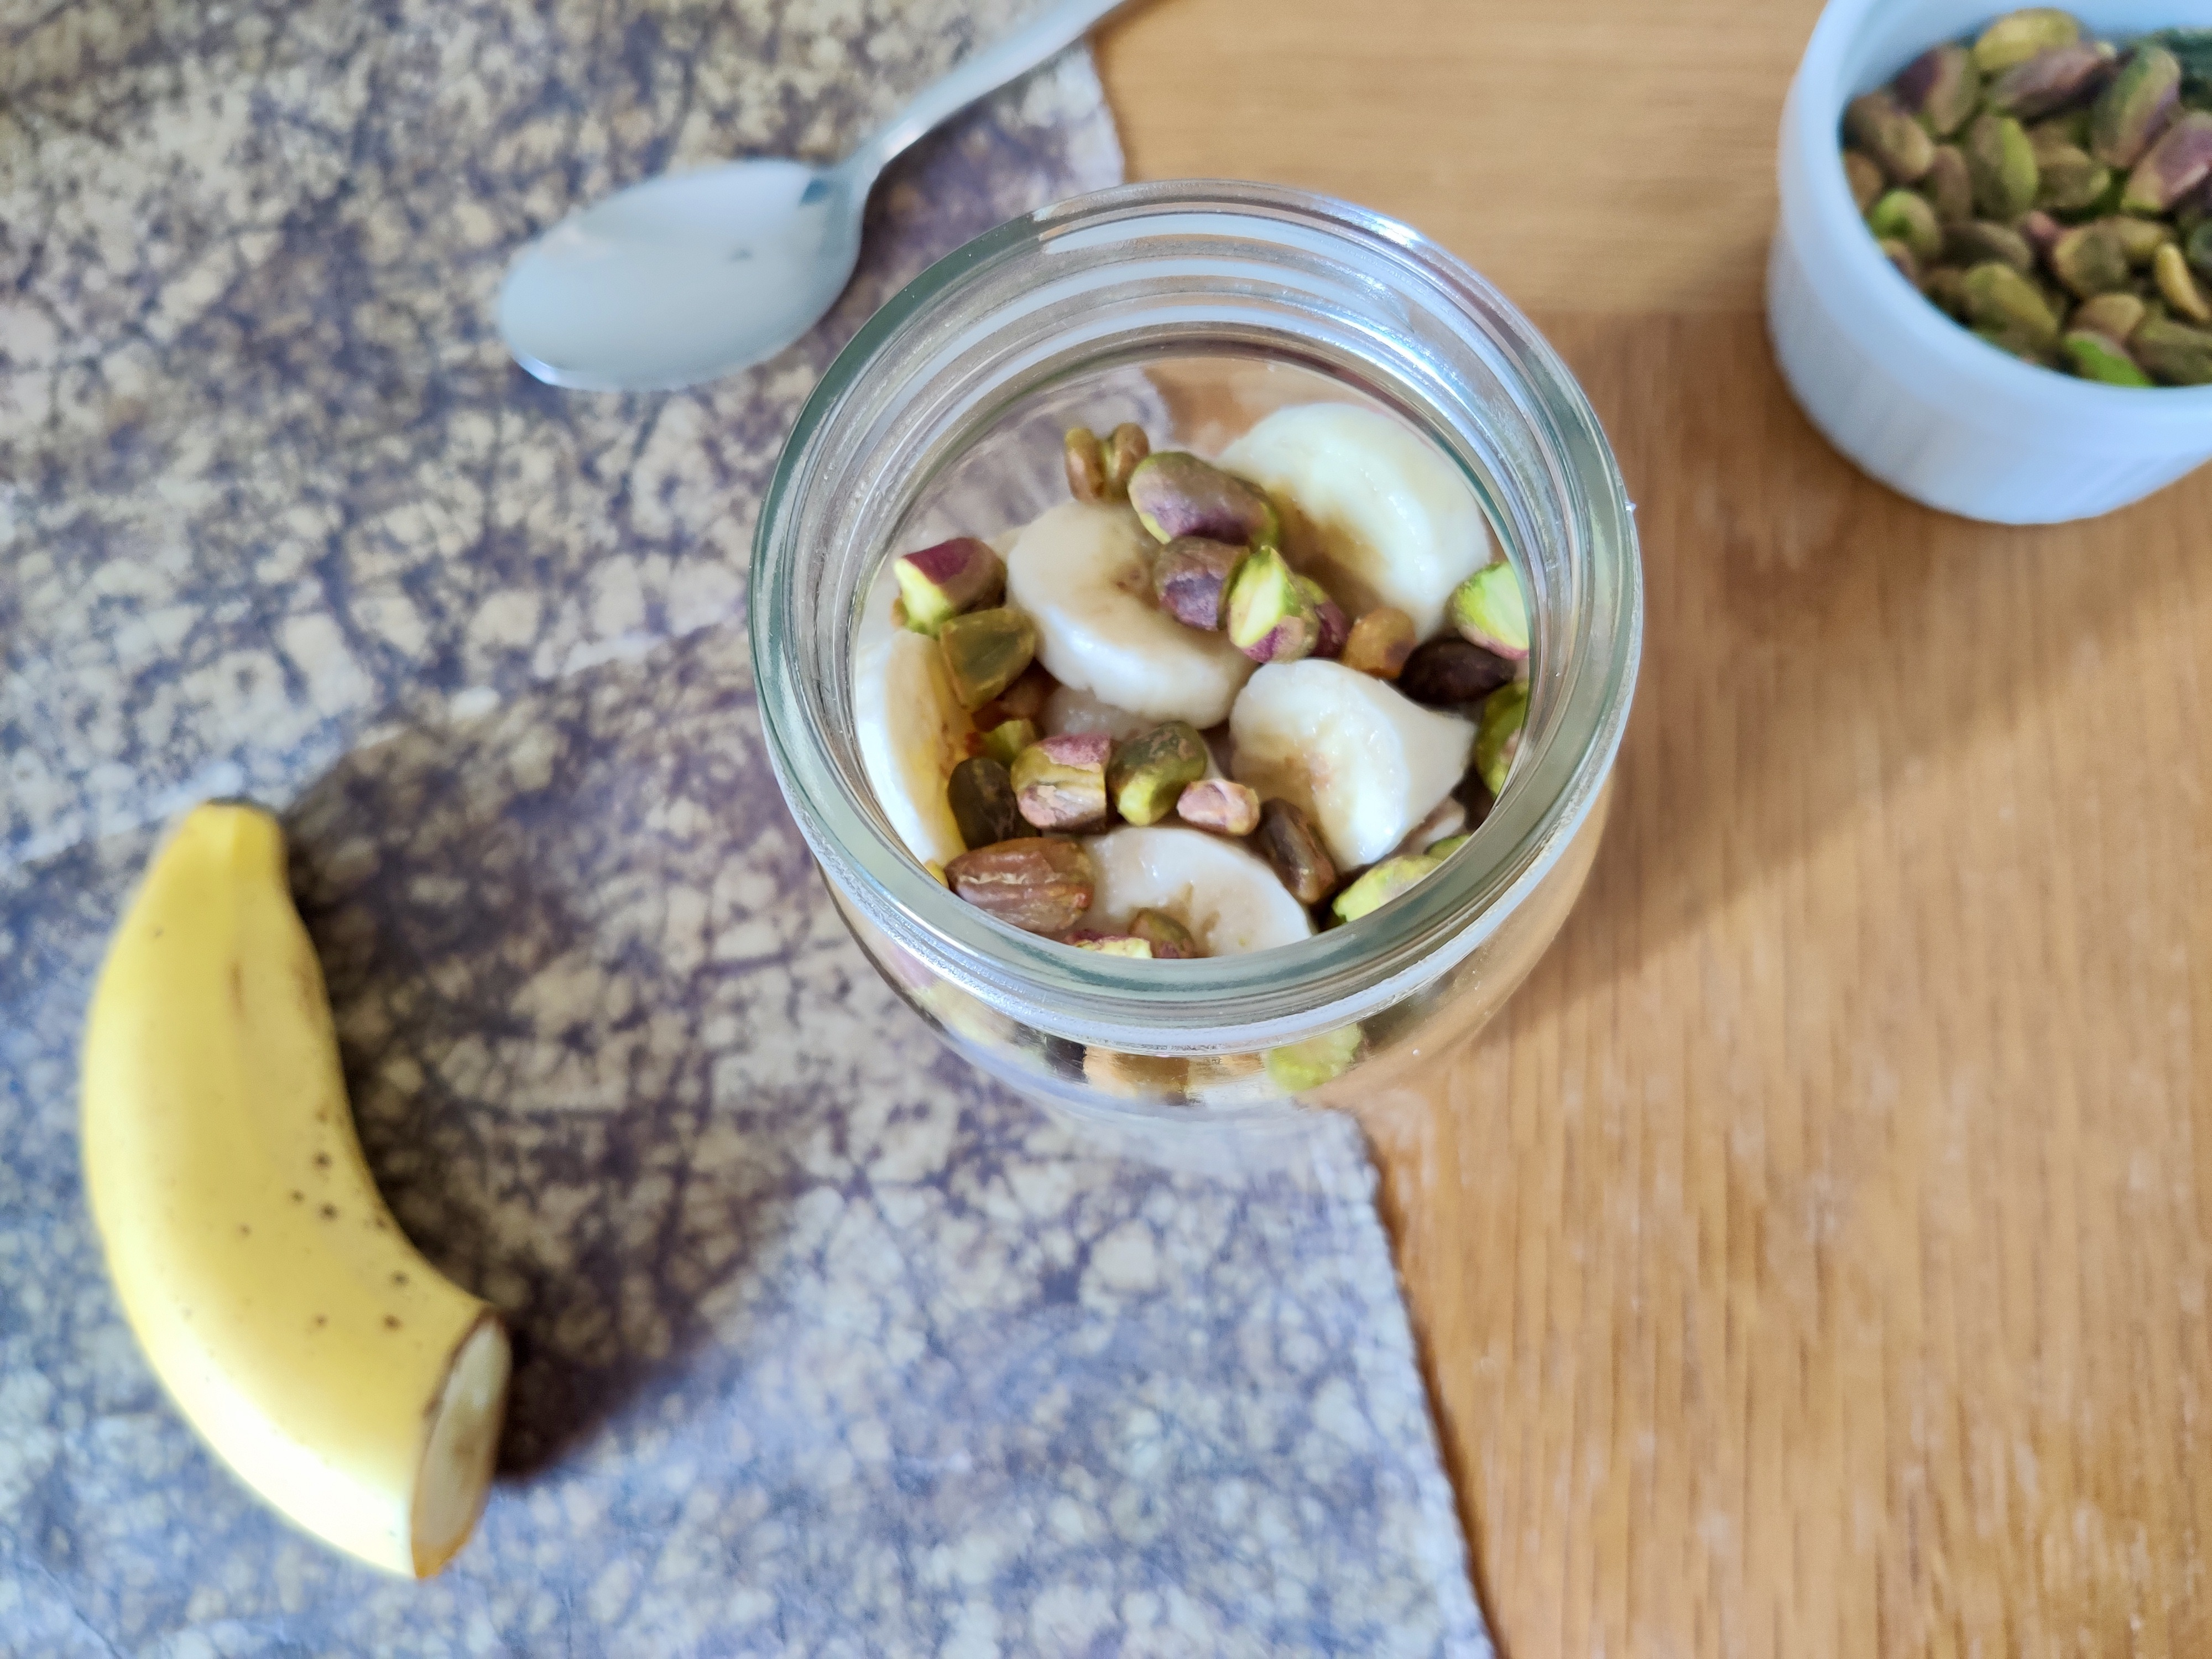 These pistachio and cinnamon overnight oats promote the growth of beneficial bacteria in your gut.